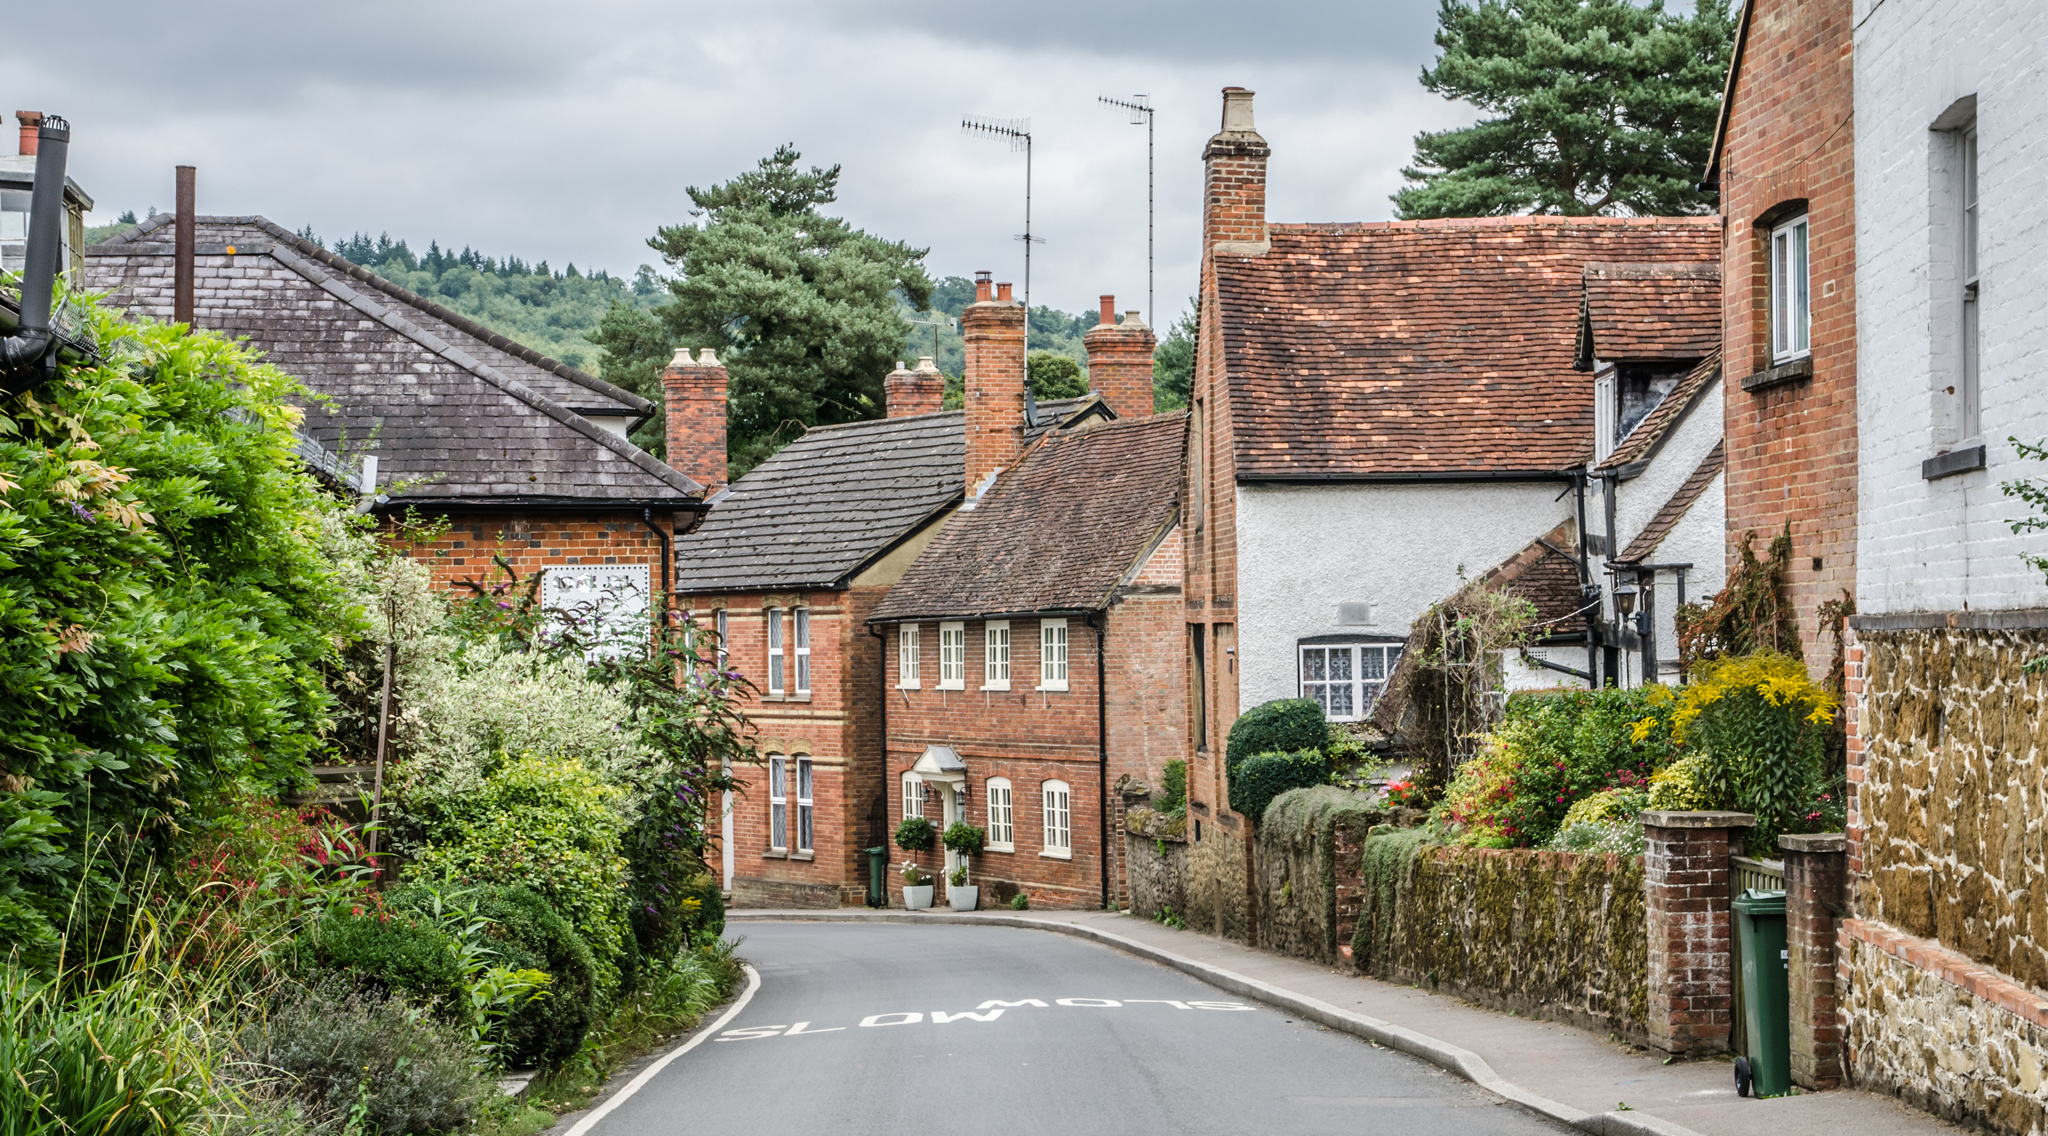 Best Small Towns To Live In 10 Unbelievably Cute Villages Within Easy Reach Of London